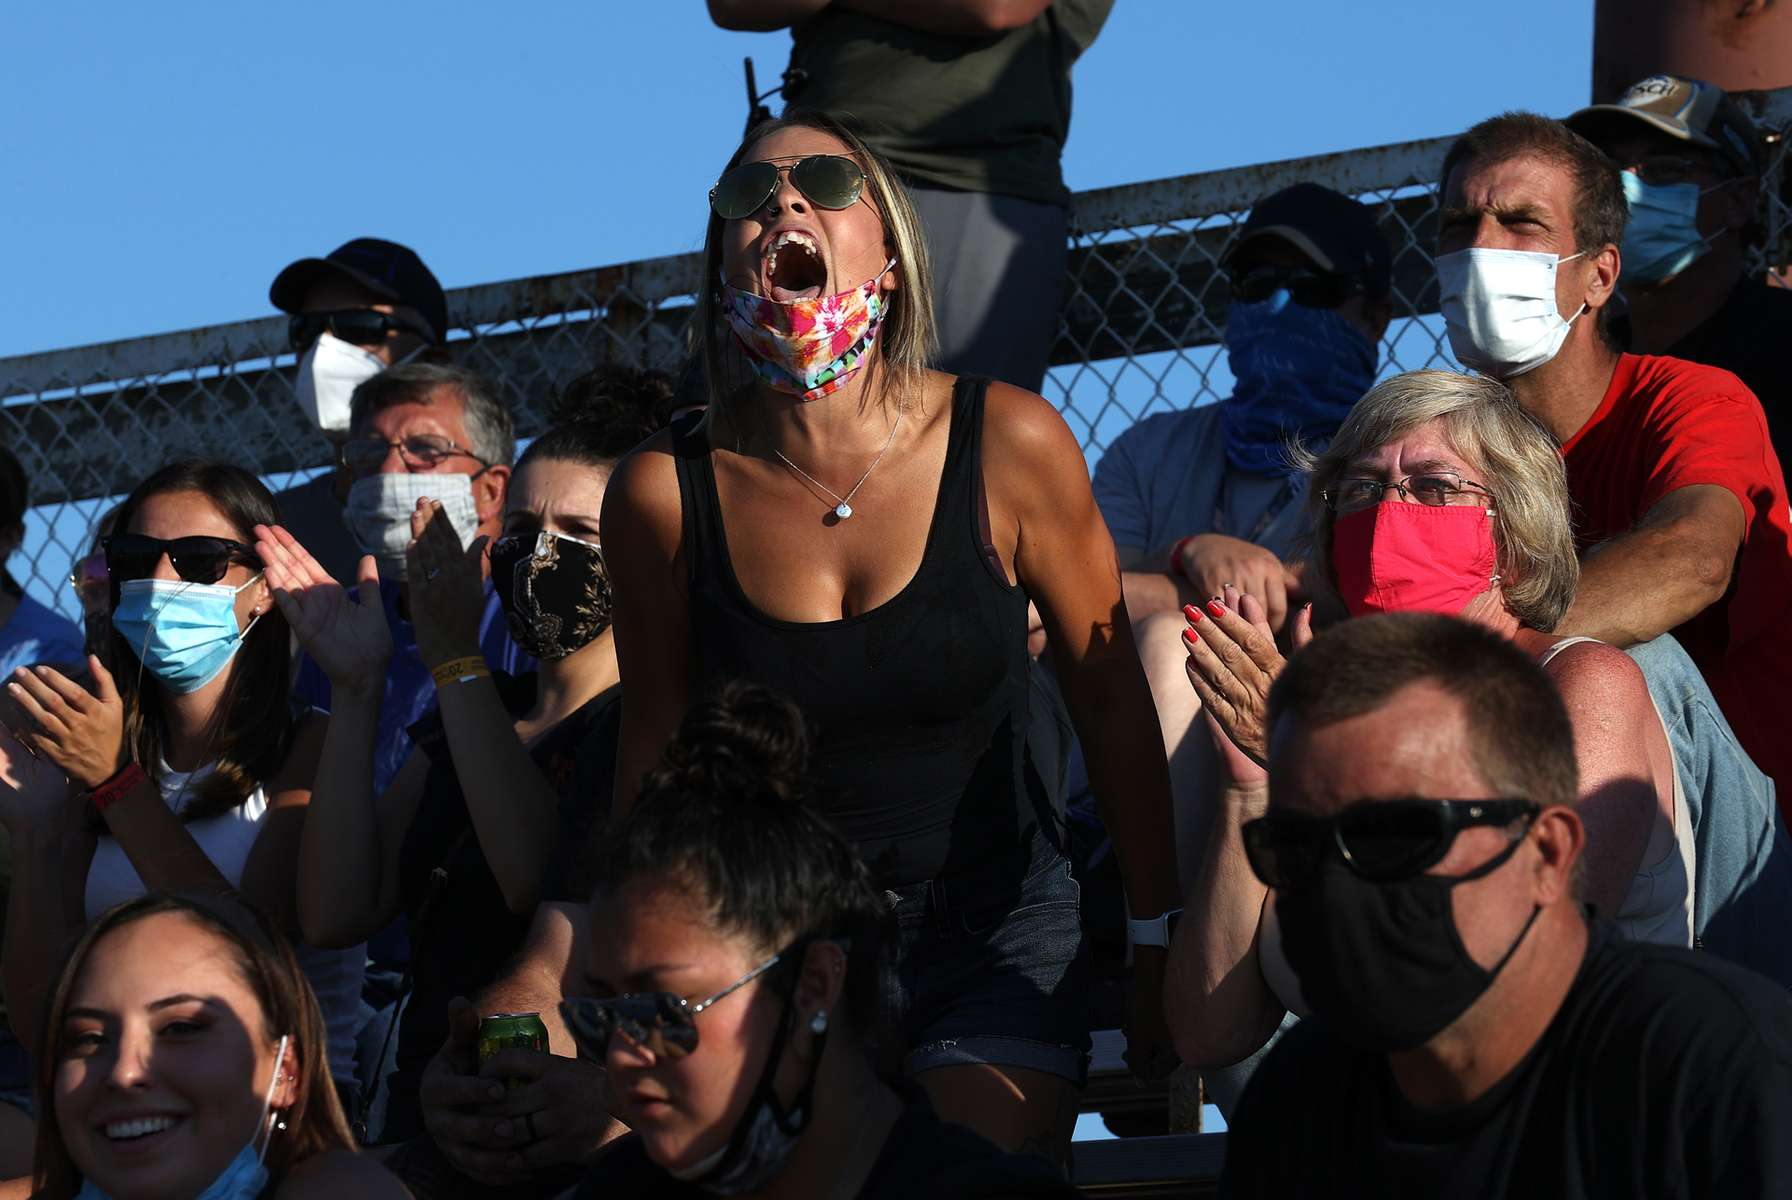 Fans cheer the cars racing around the track during NASCAR Advance Auto Series Opening Night at Riverhead Raceway on August 01, 2020 in Riverhead, New York.  The race track had been closed due to the coronavirus COVID-19 pandemic.  More than 4,585,258 people in the United States alone have been infected with the coronavirus and at least 154,000 have died.